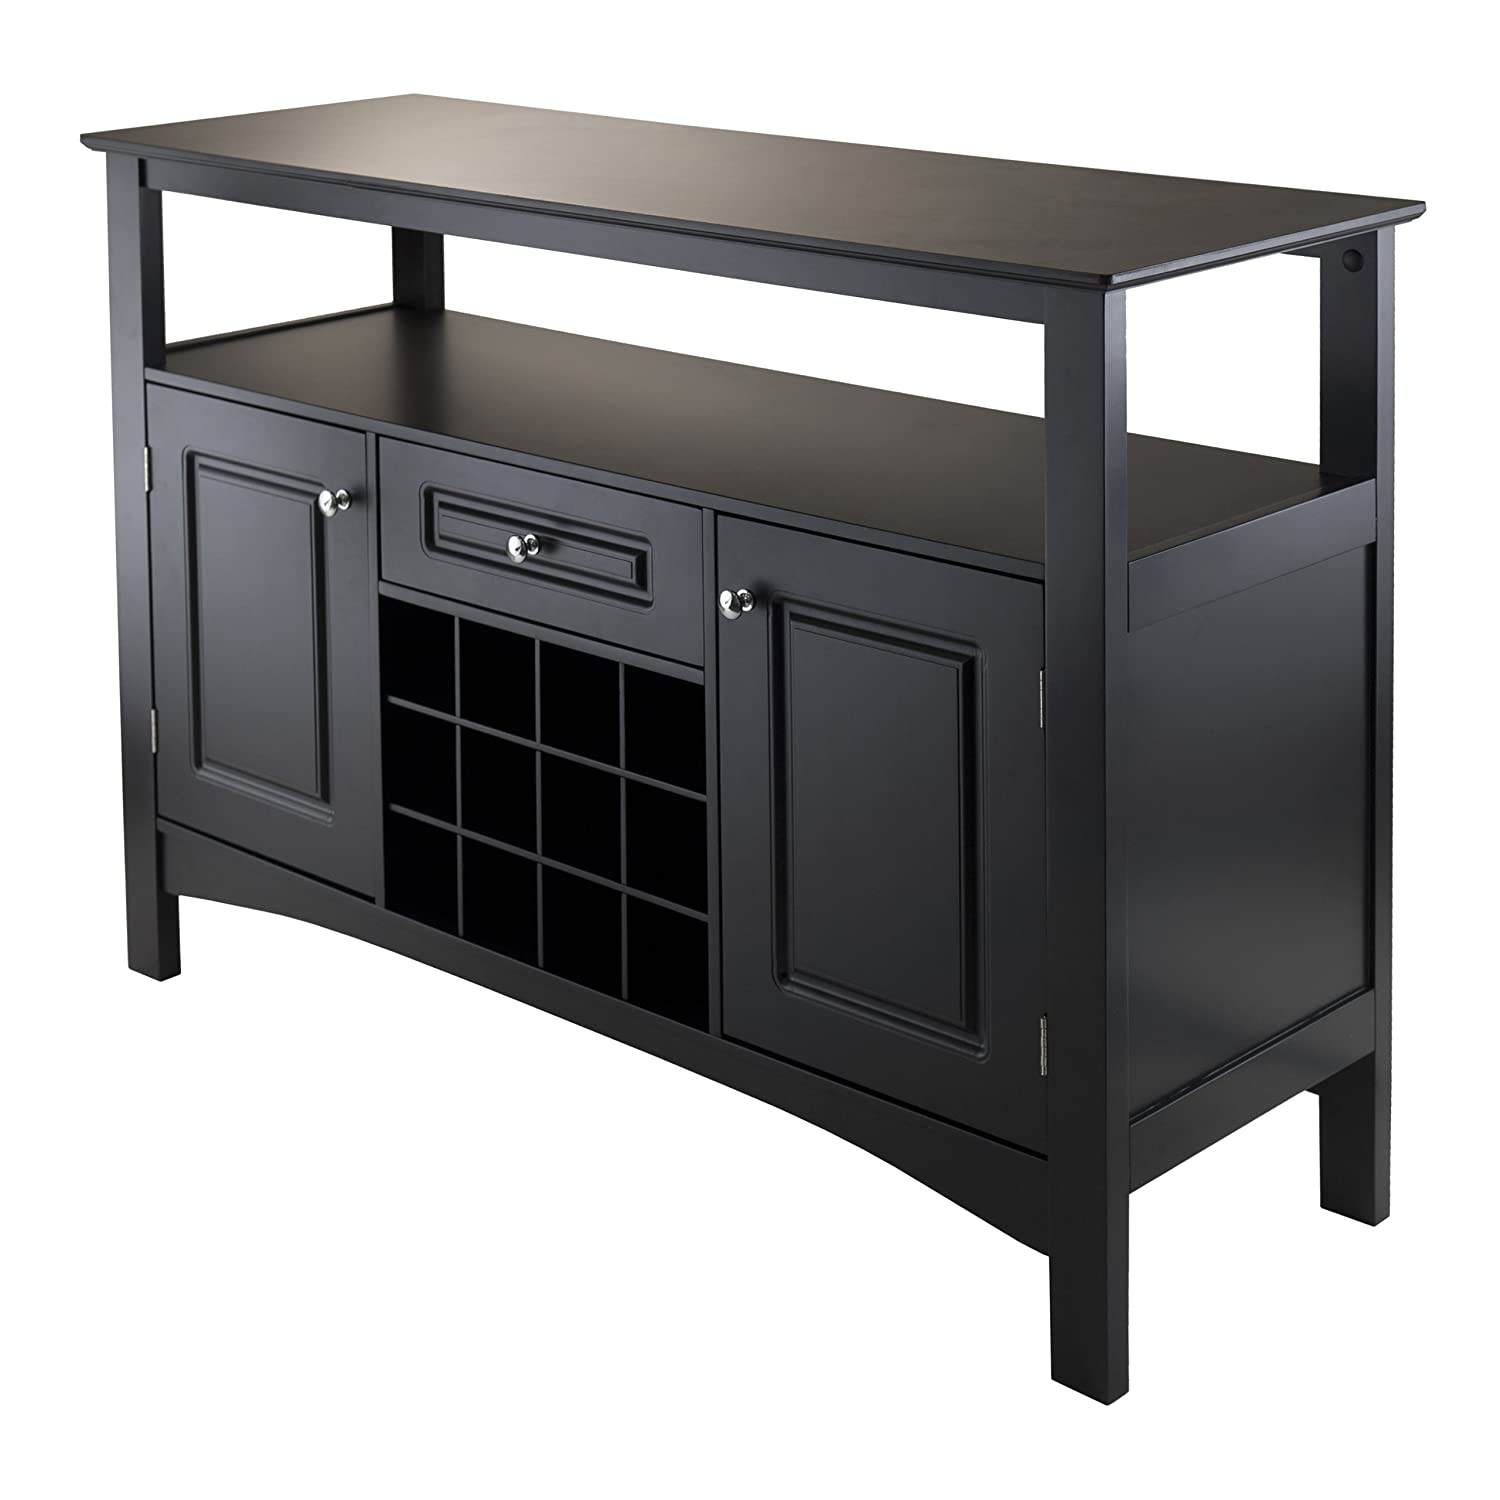 Kitchen Server Furniture Shop Amazoncom Buffets Sideboards